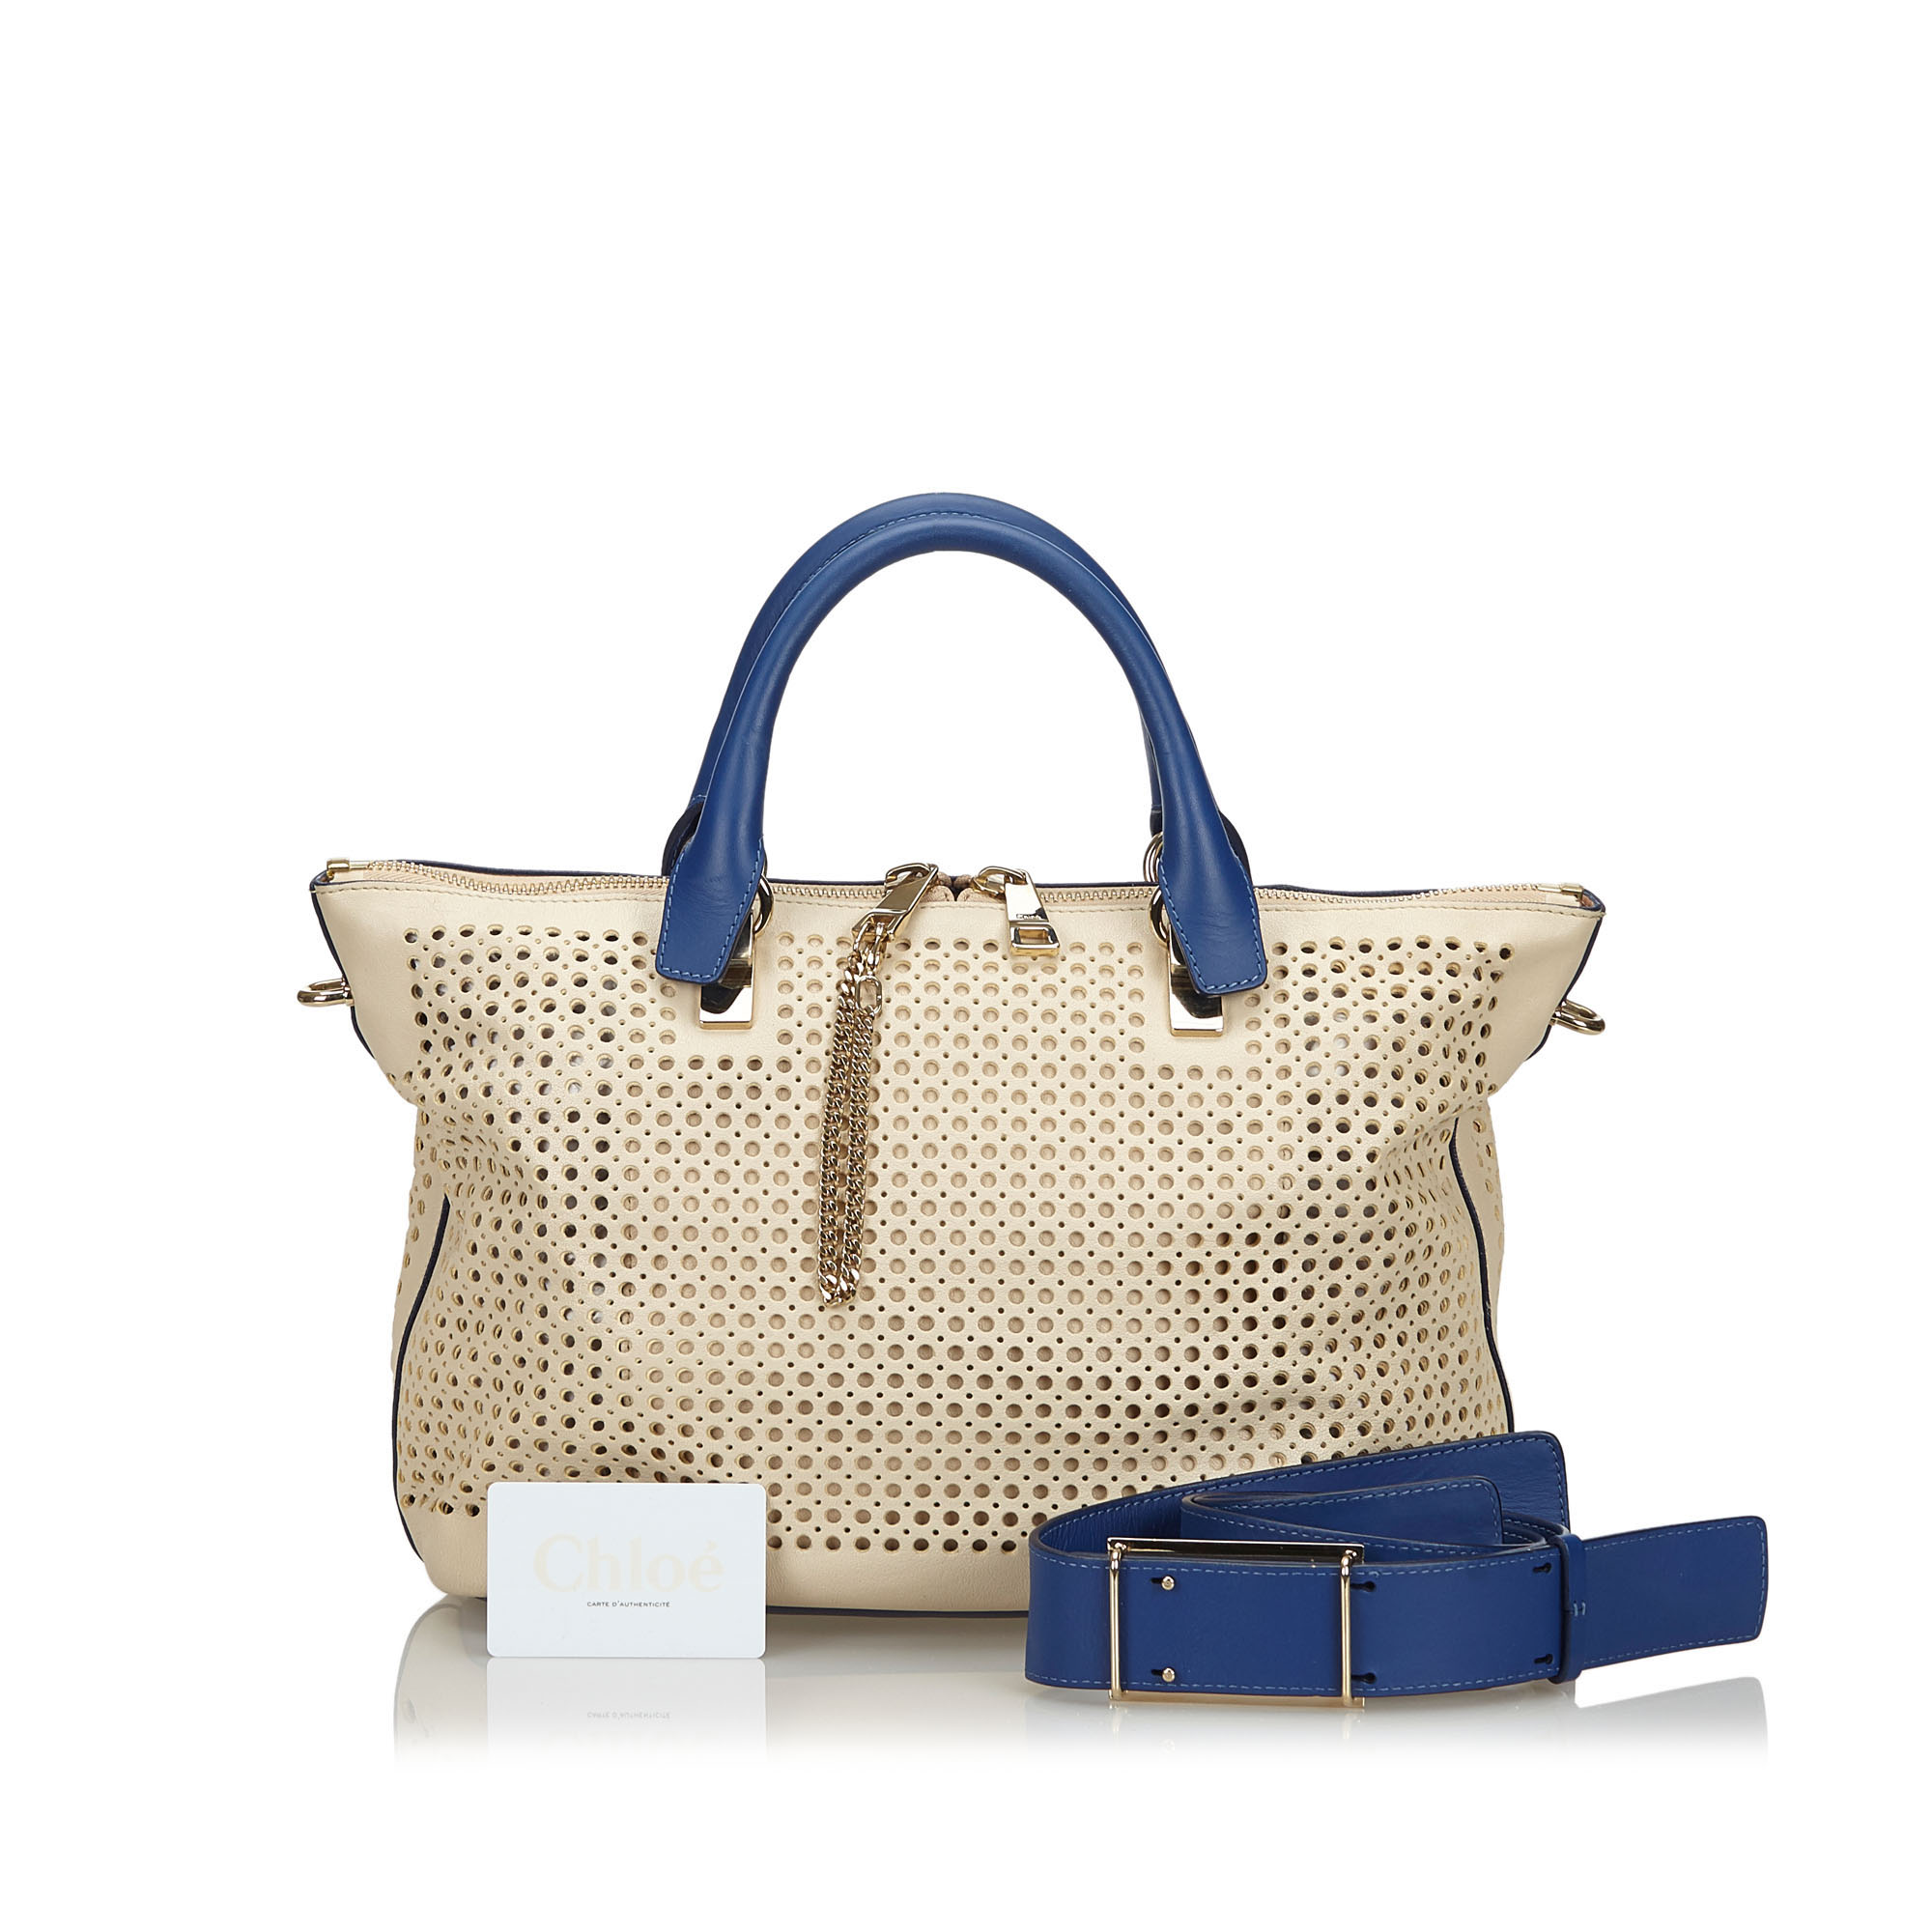 Chloe White Blue Perforated Leather